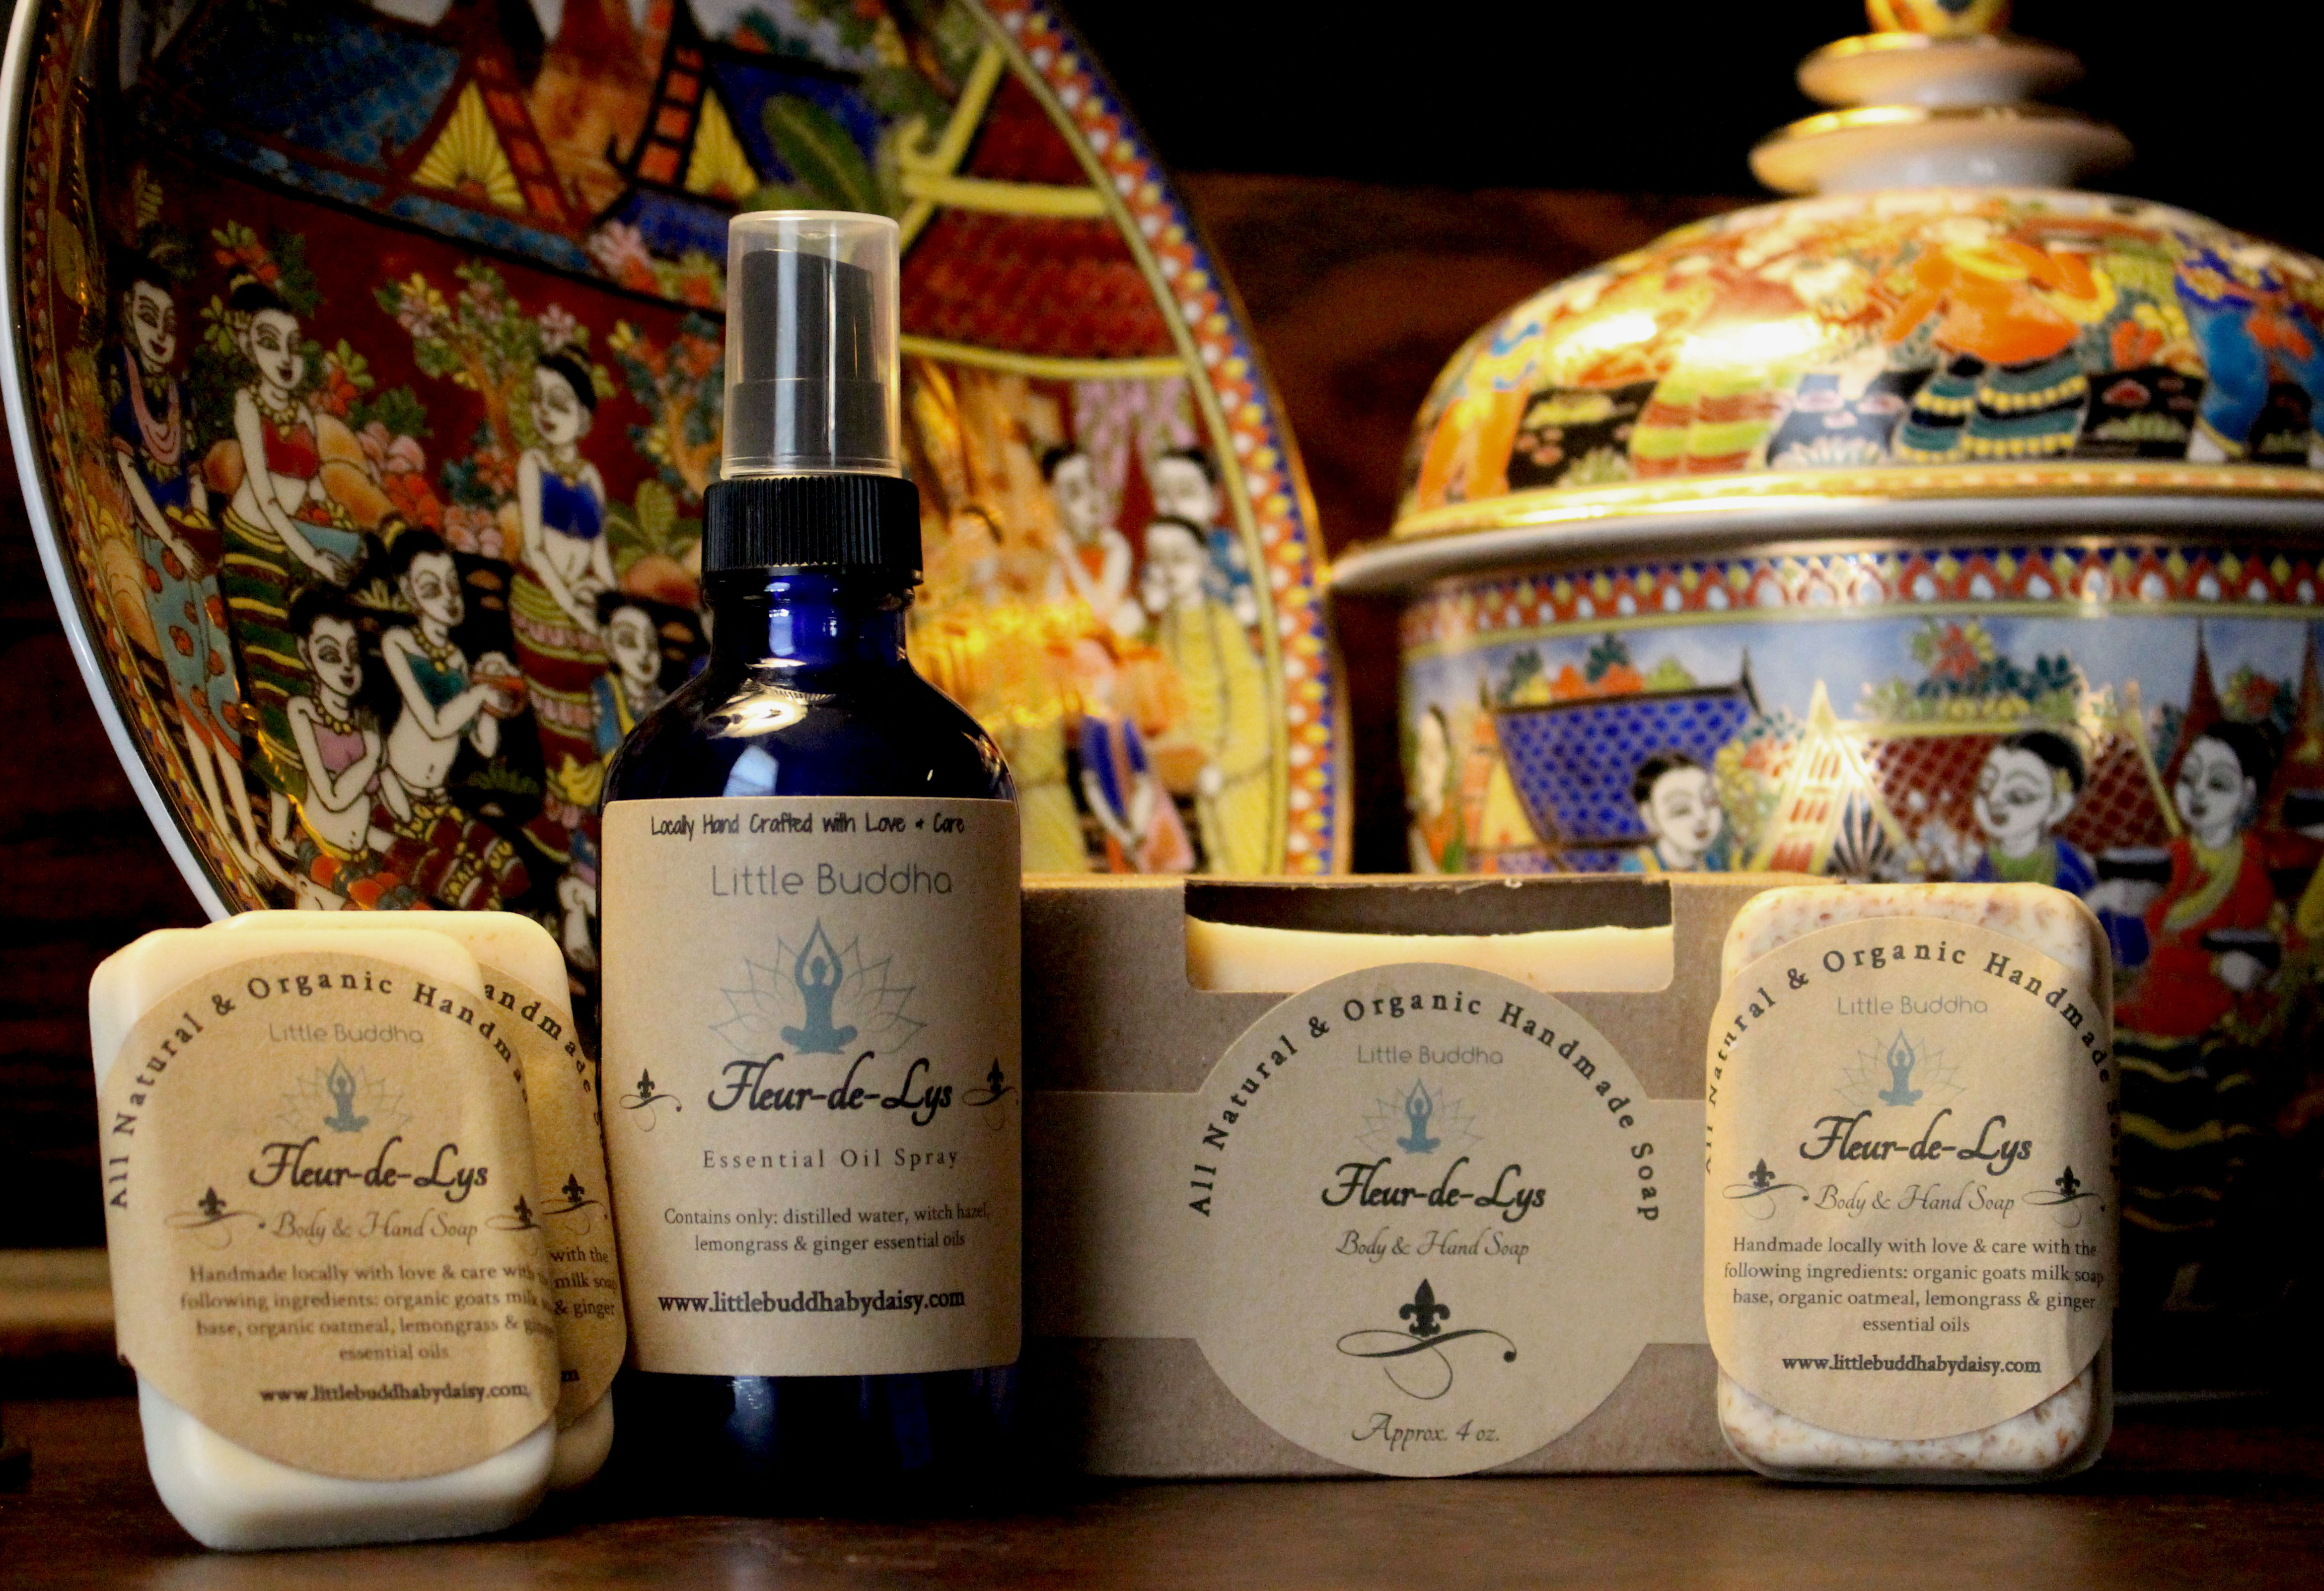 Hand crafted soaps displayed next to Thai pottery.